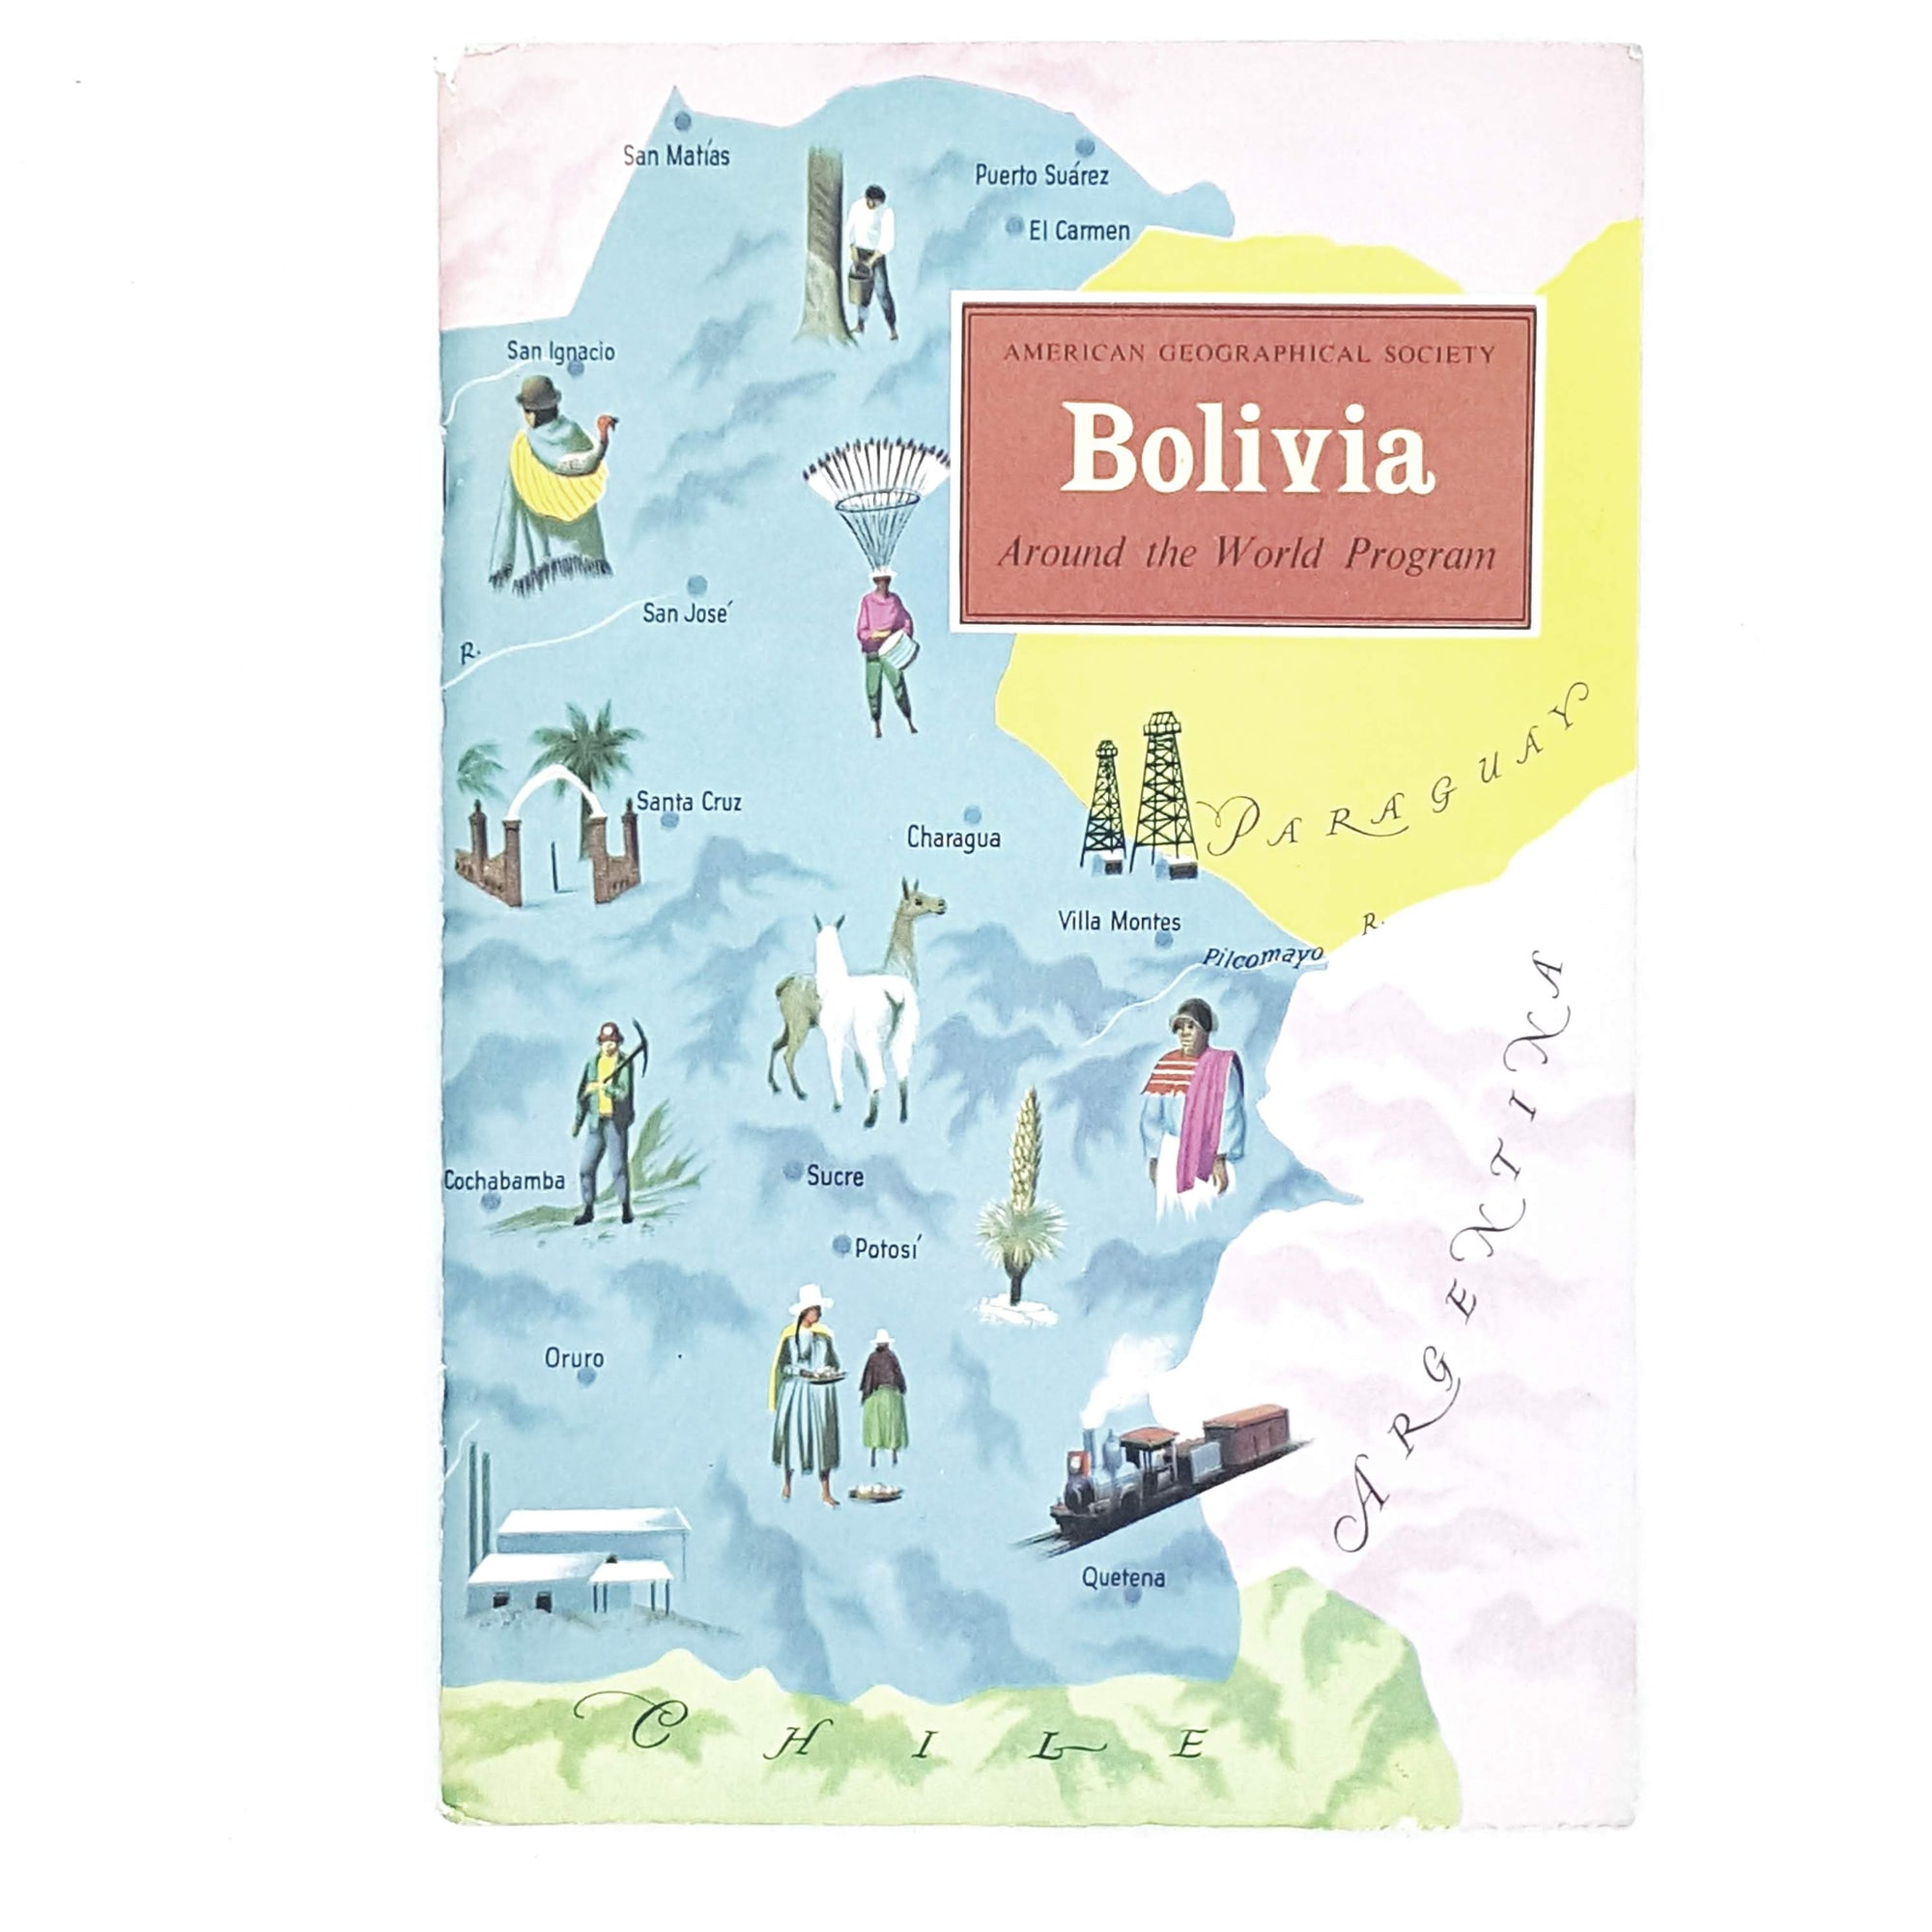 vintage-travel-bolivia-blue-sea-country-house-library